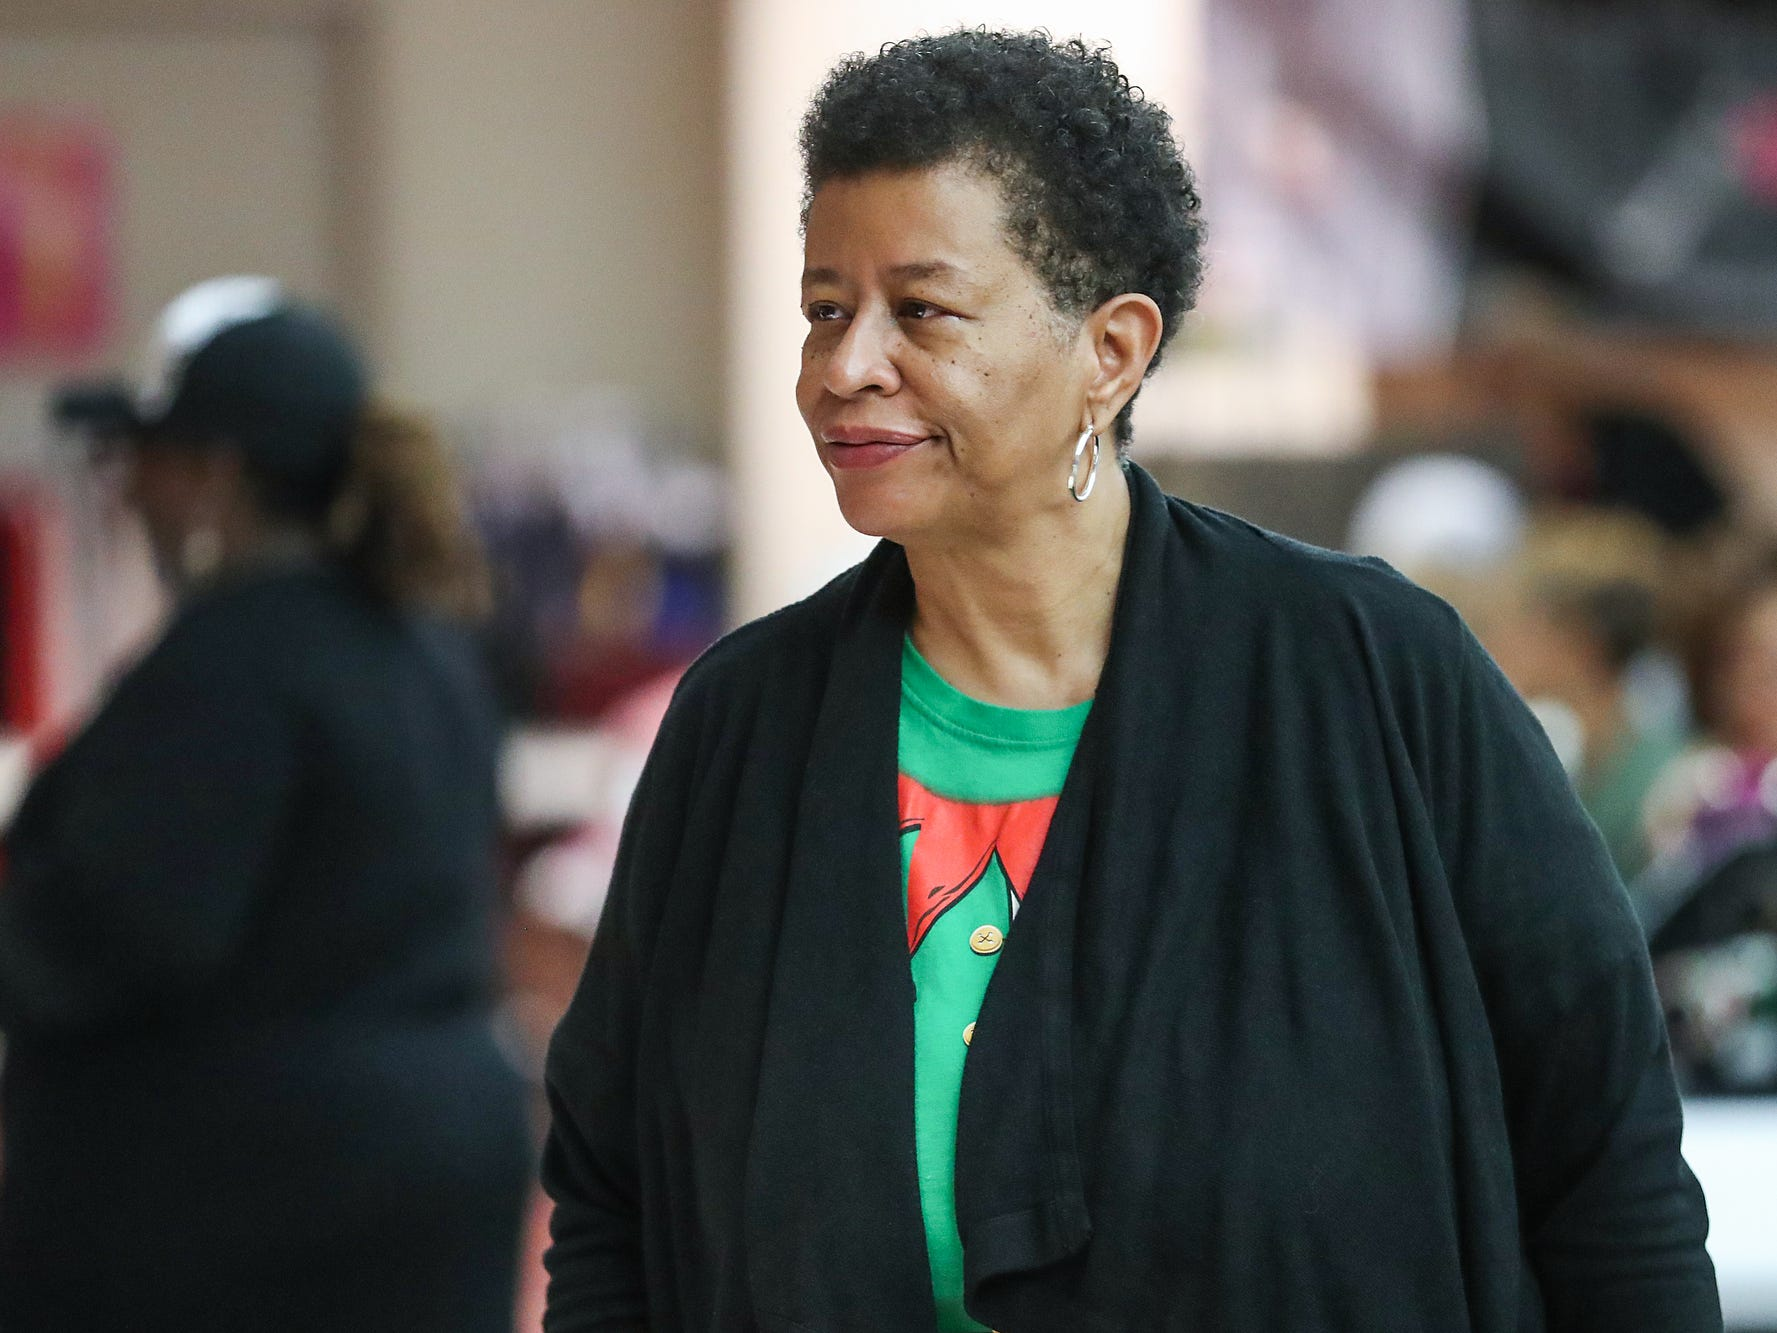 """Jerilyn Lewis and her three sisters began a market to showcase women and minority-owned small businesses five years ago for Small Business Saturday, held this year at the Murat Shrine Temple in Indianapolis, Saturday, Nov. 24, 2018. """"We are women, and we are minorities, so we thought this would be an opportunity not only for us, but for others that were like us,"""" Lewis said.Ê""""It's important that women and minorities have an outlet, have the venue.ÊAnd that's why we did it."""""""